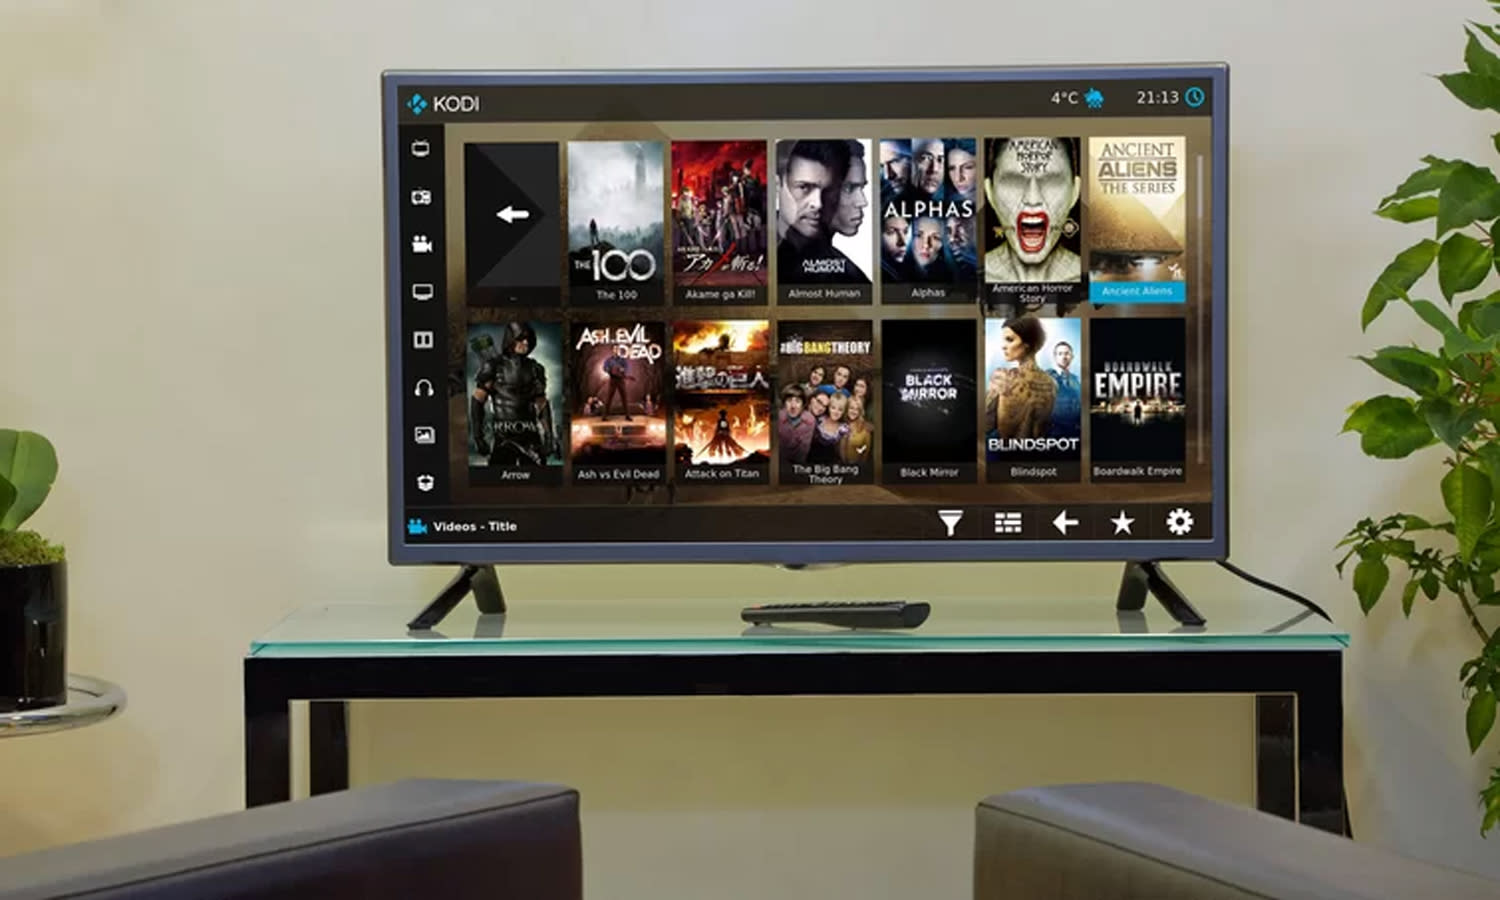 Watch Kodi on Amazon Fire TV? You're About to Be Hacked